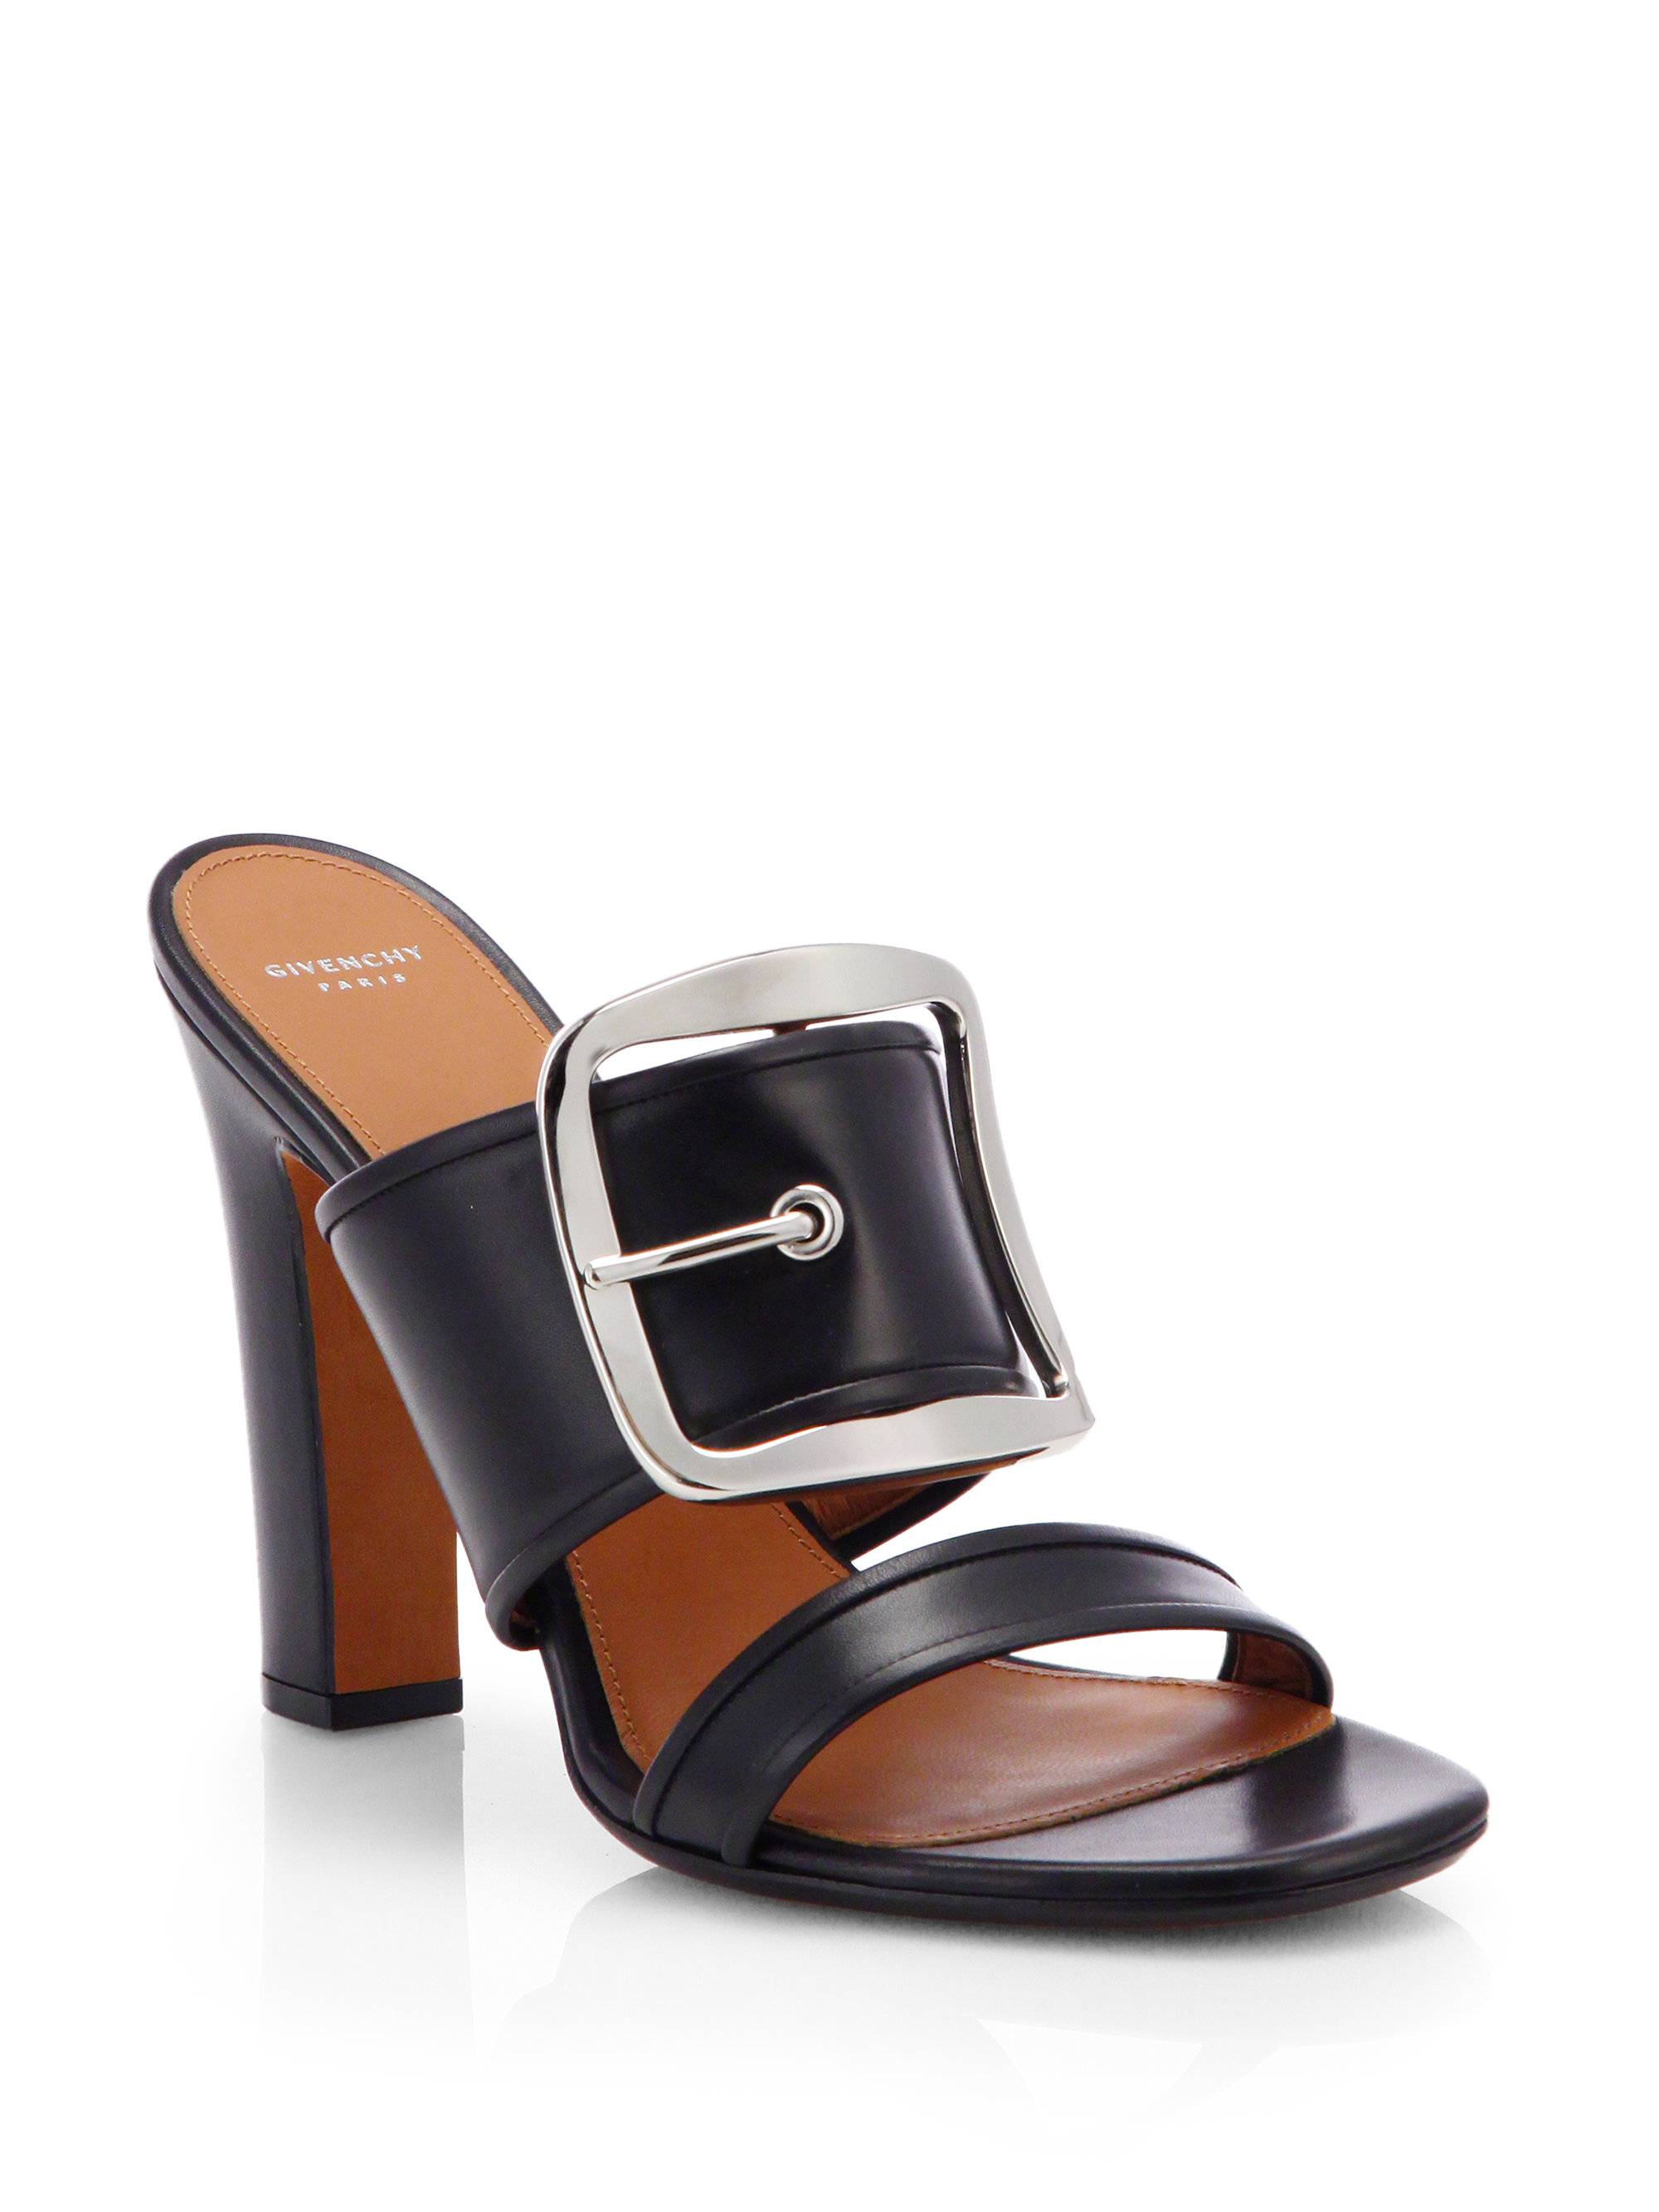 Givenchy Leather Buckle- Accent Sandals outlet Cheapest x8URdZaGlK